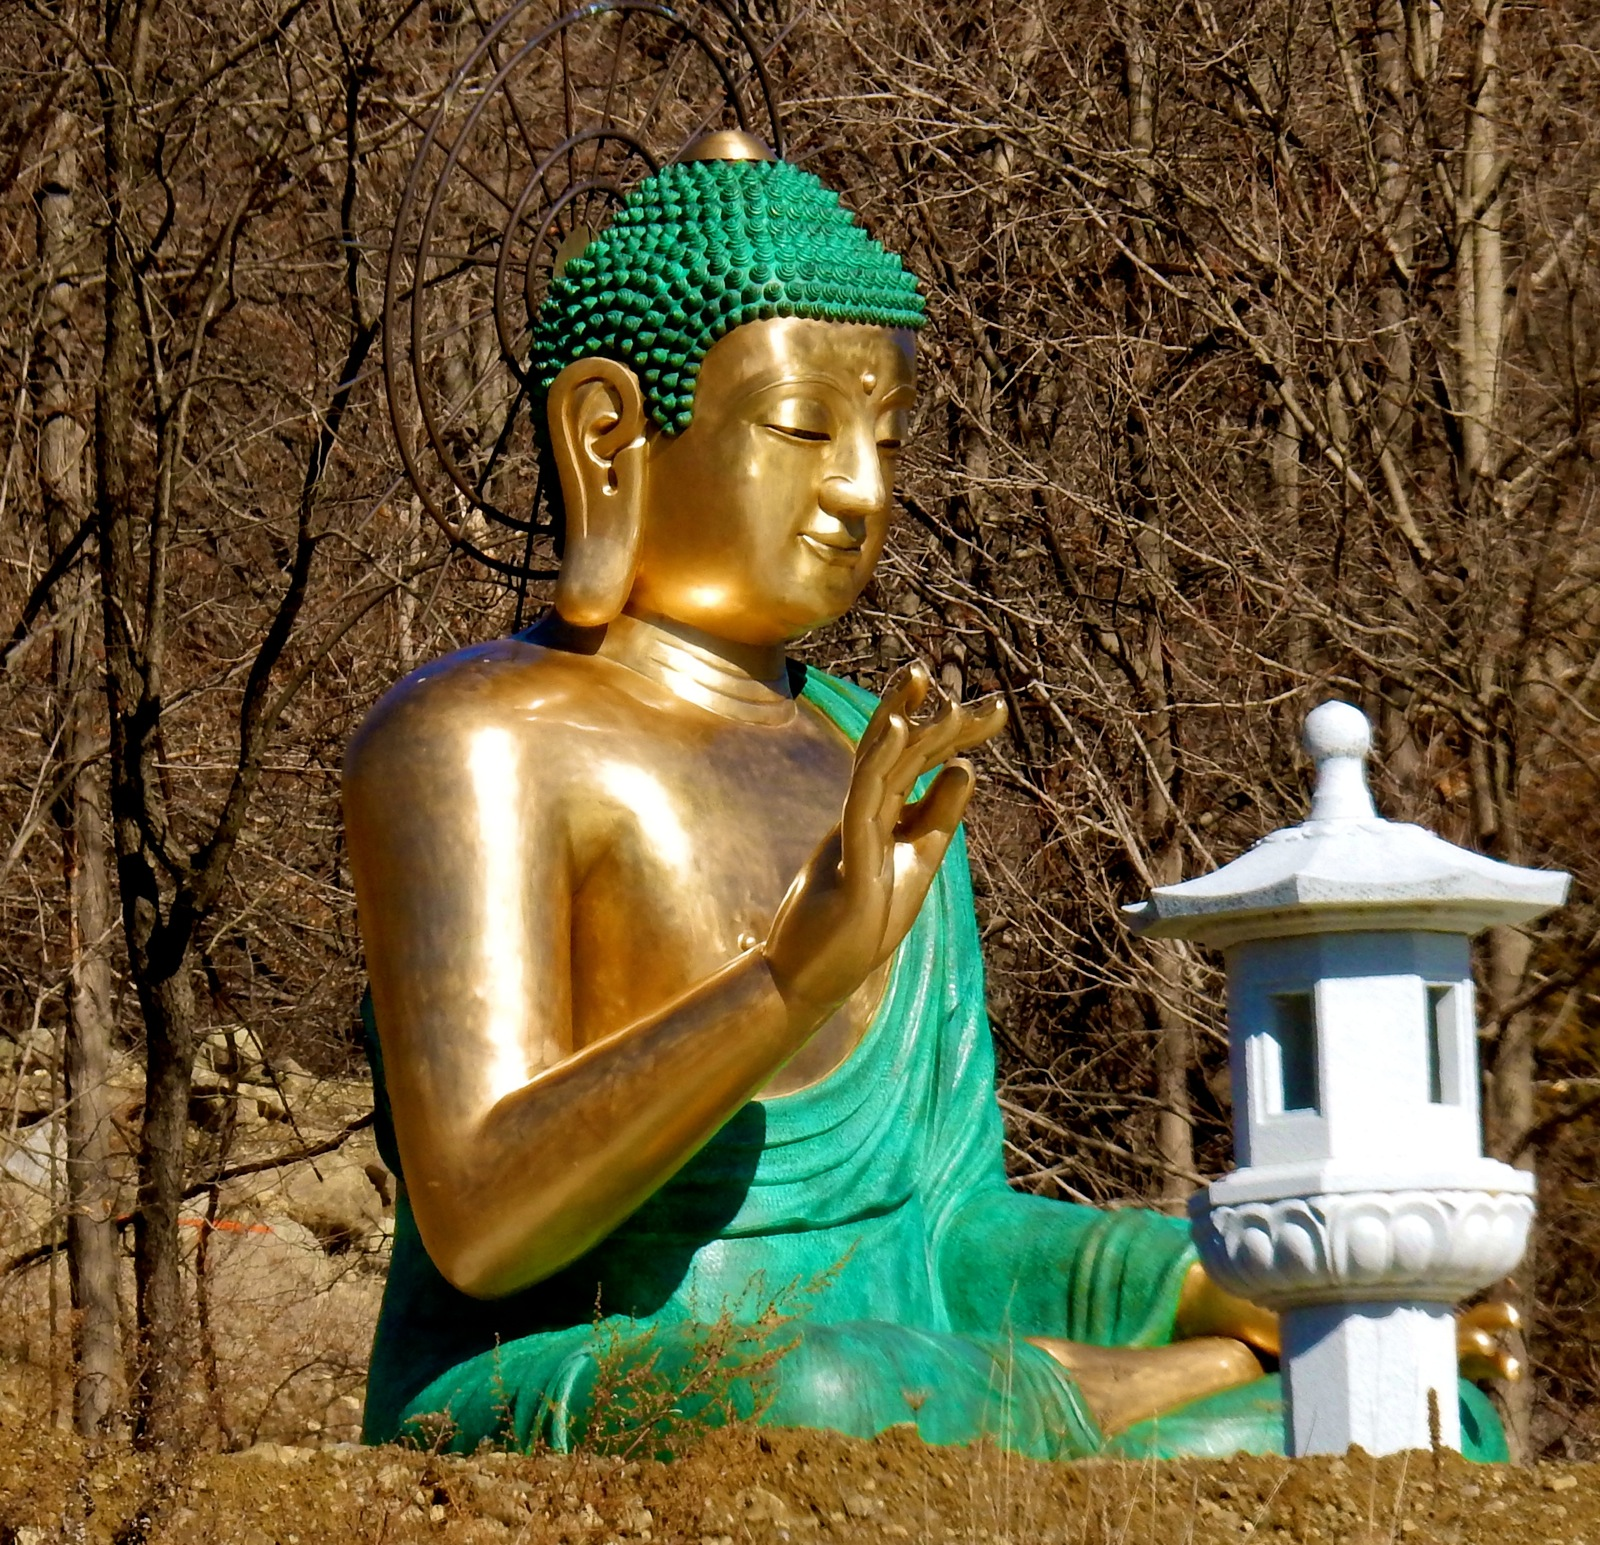 salisbury mills buddhist personals Korean buddhist wonkaksa 260 clove road salisbury mills, ny 12577 845-497-2229 fax: 845-496-3126 wwwwonkaksacom contact: not given email: newyorkwonkaksa@yeahoocom wonkaksa was founded in 1974 by korean zen master seung sahn of the jogye order.